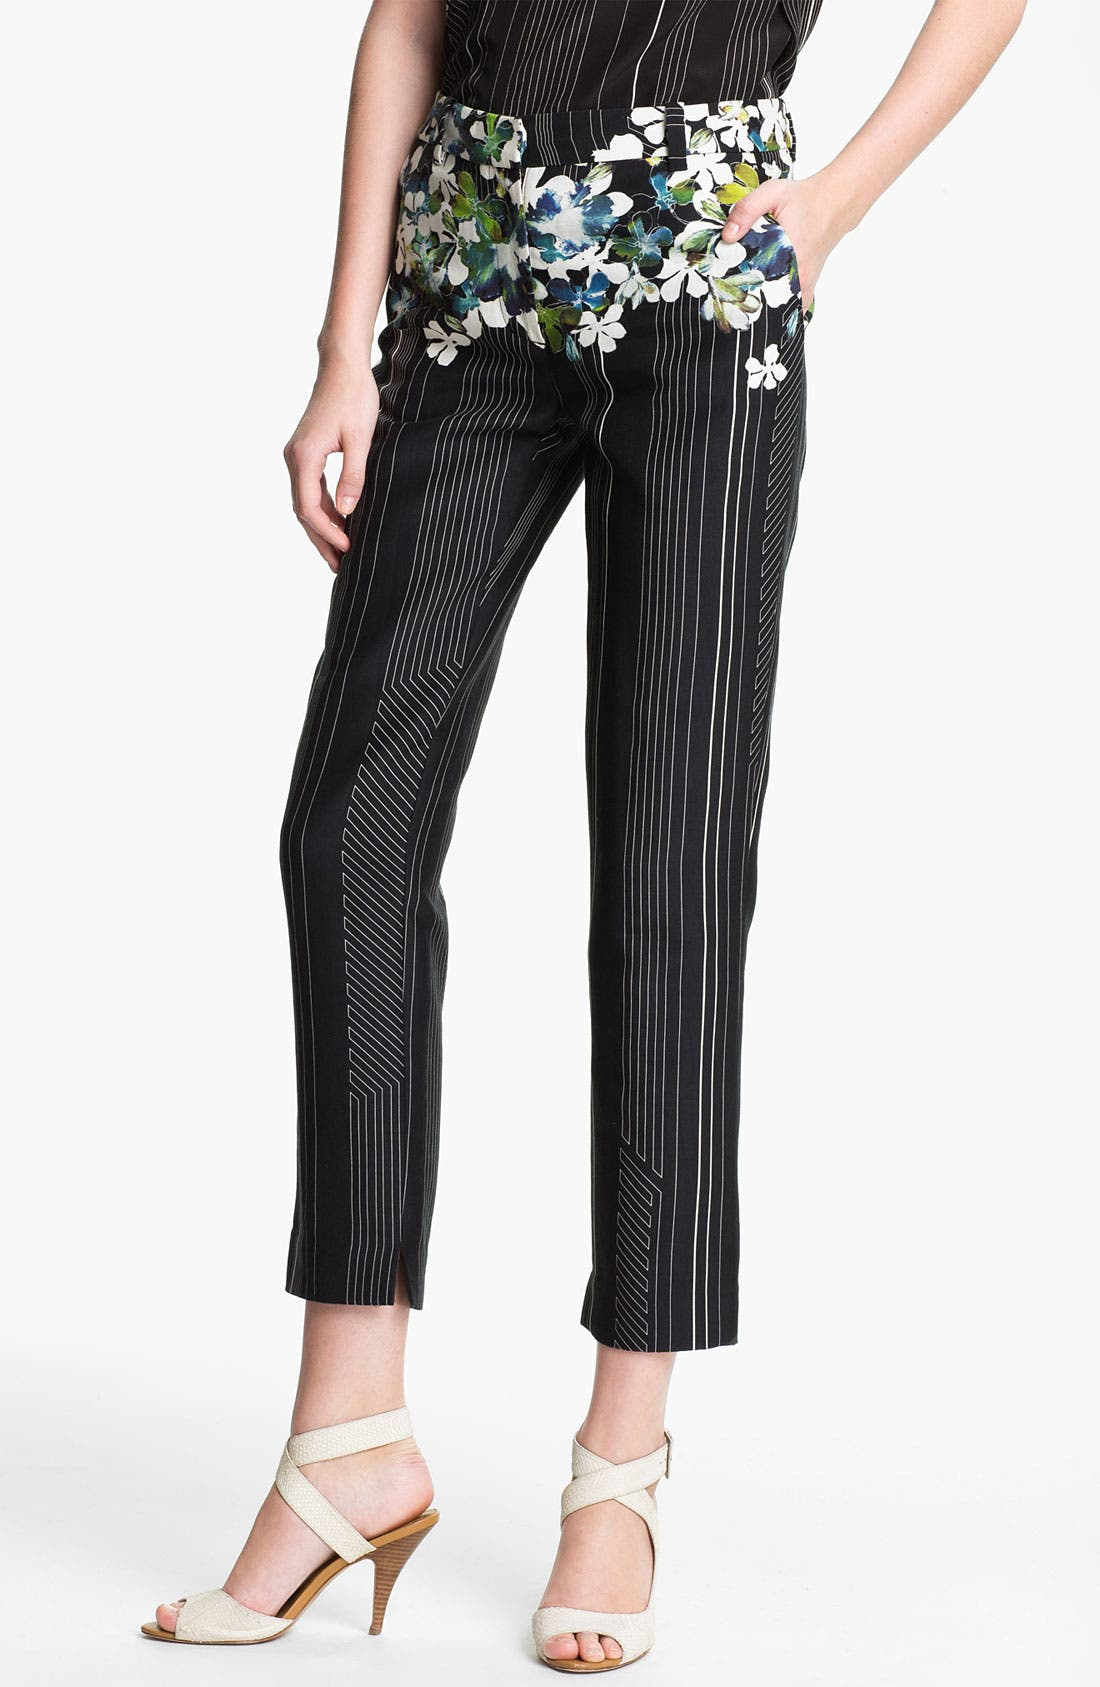 Main Image - 3.1 Phillip Lim Floral Print Flat Front Trousers